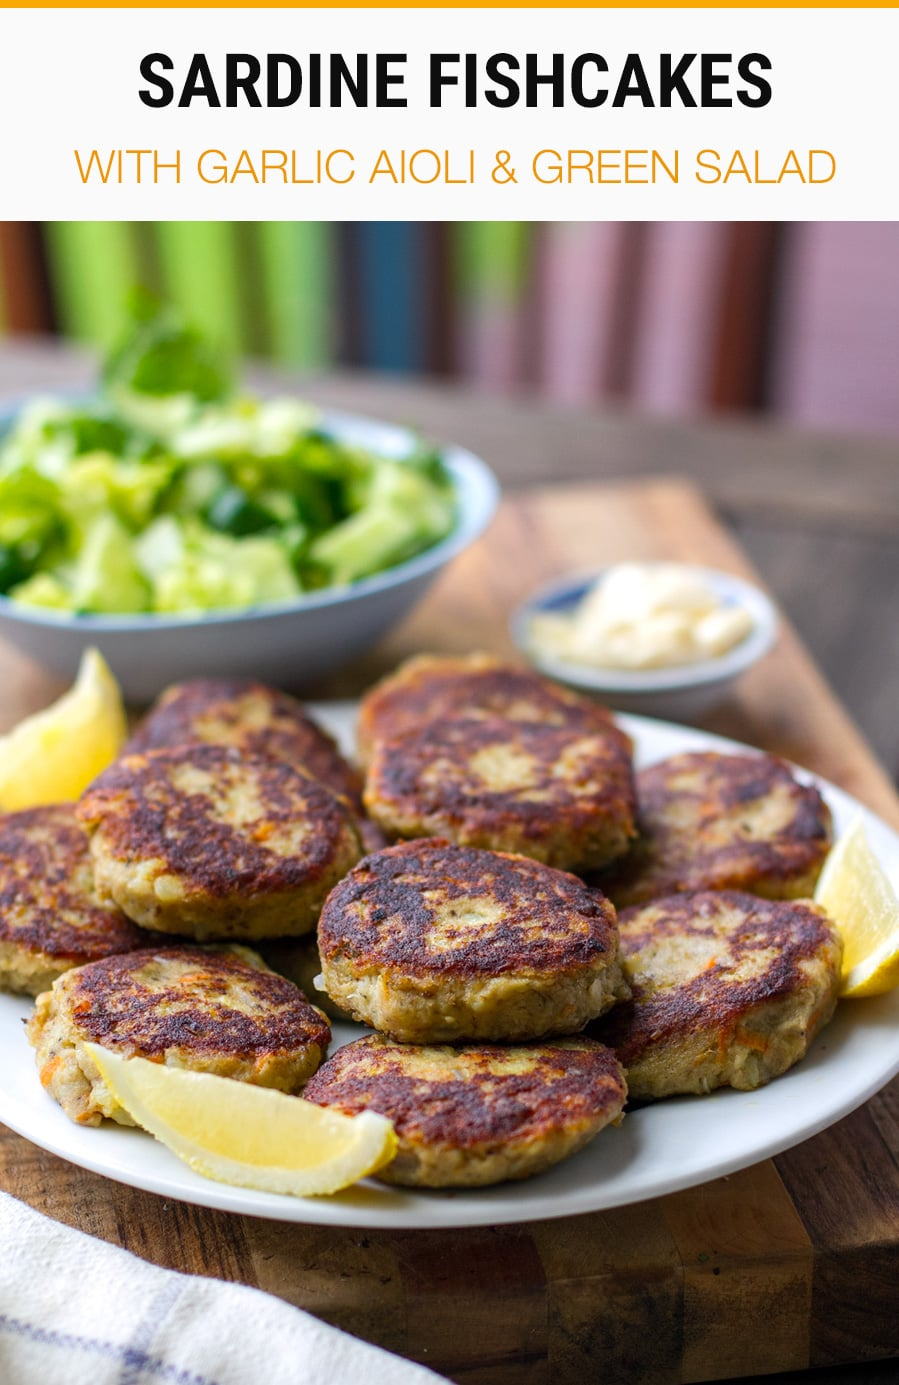 Sardine fishcakes with garlic aioli and green salad